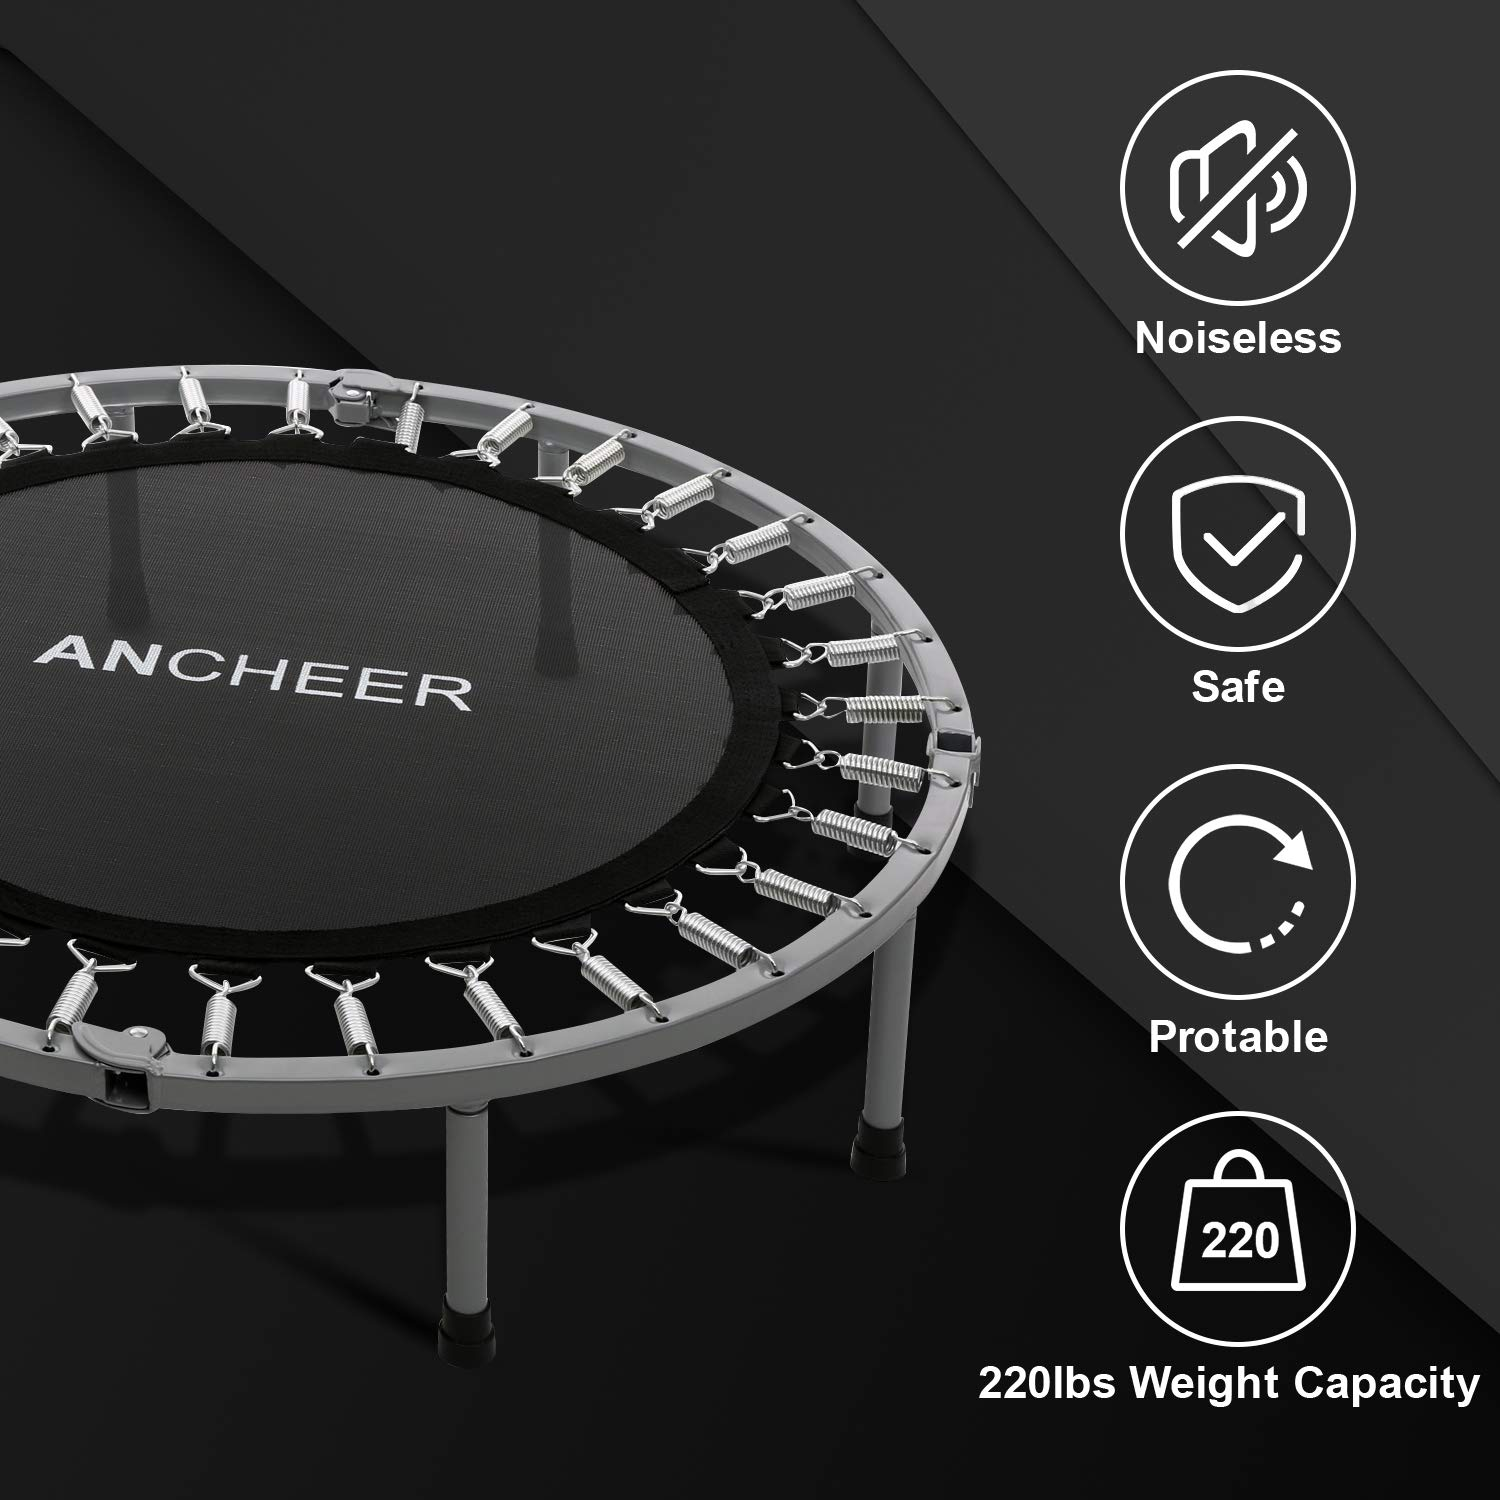 ANCHEER Mini Trampoline with Safety Pad (Blue, 40inch-Not Folding) by ANCHEER (Image #6)